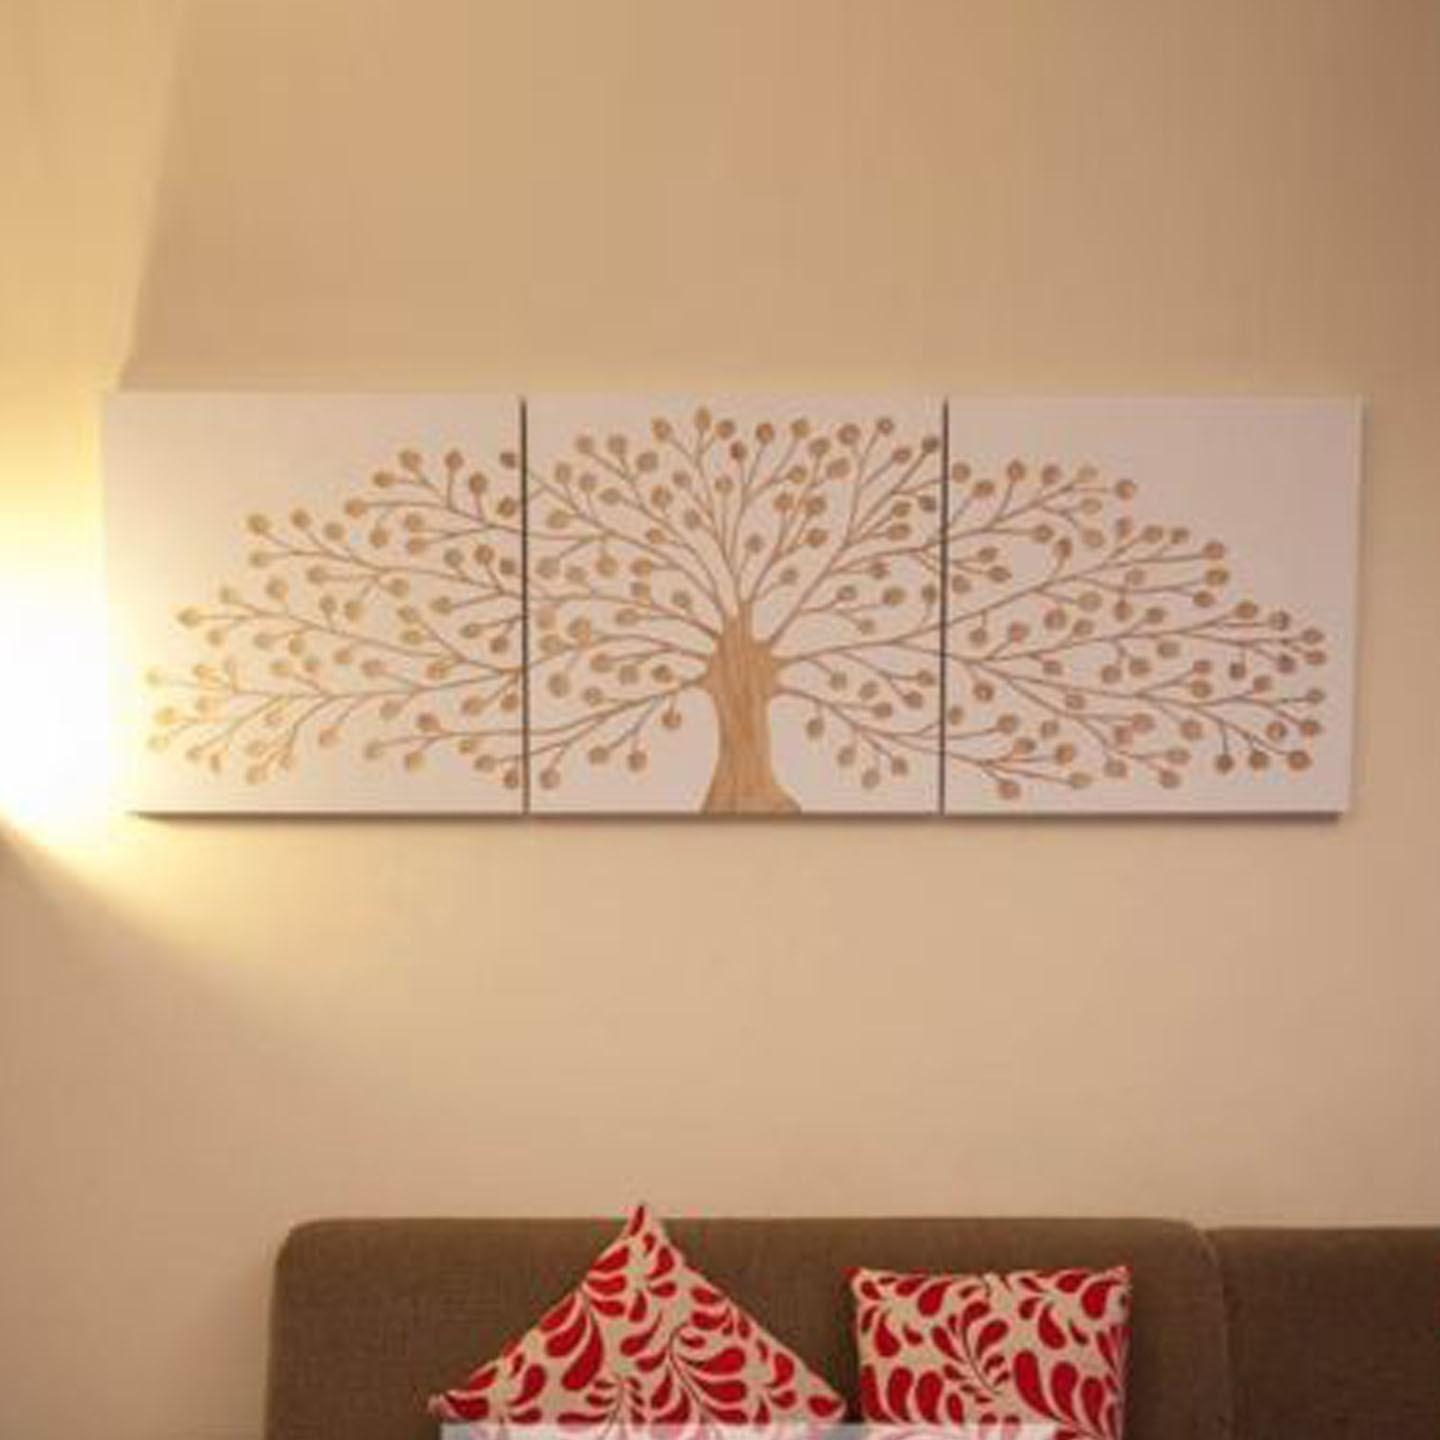 Tree Of Life 60 X 60Cm – White – 3 Panels Triptych Wall Art Within Tree Of Life Wood Carving Wall Art (Image 9 of 20)